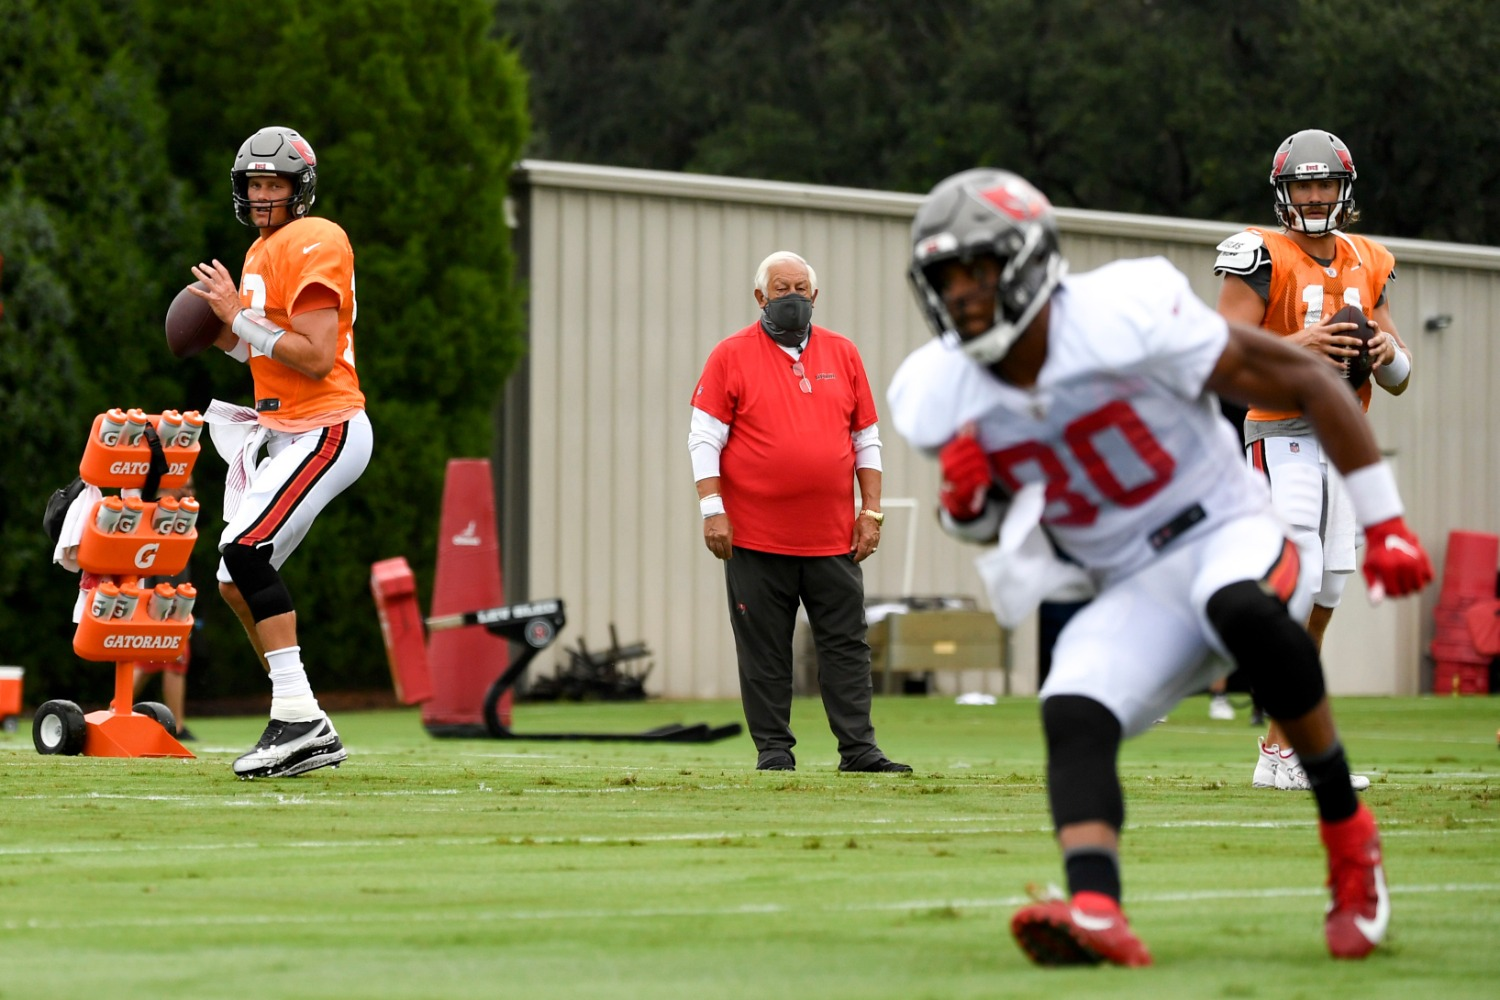 Tom Brady just suffered a potential setback to his Super Bowl dream with Buccaneers tight end O.J. Howard sustaining an Achilles injury that will likely end his season.